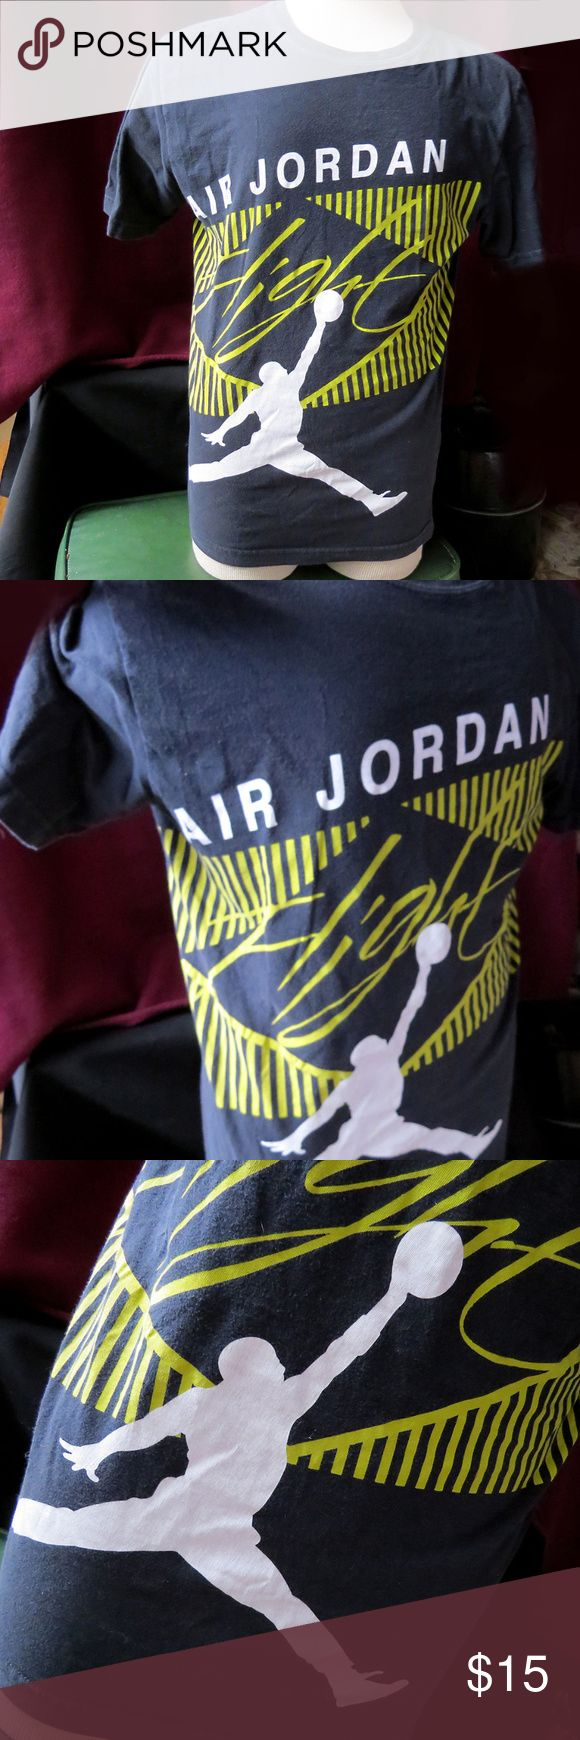 Classic Nike Air Jordan Flight T-Shirt Sz M NBA Pretty sweet men's worn-in Nike Air Jordan Flight basketball T-shirt in size M. The front features the Michael Air Jordan Flight logo over yellow abstract graphic, and the back has the Air Jordan logo.  Good preowned condition. No rips or tears, but has been washed and worn often, so the black fabric shows fading, and some of the vinyl shows cracking. Please see all photos. From a smoke-free home.  From a smoke-free home. Air Jordan Shirts Tees…